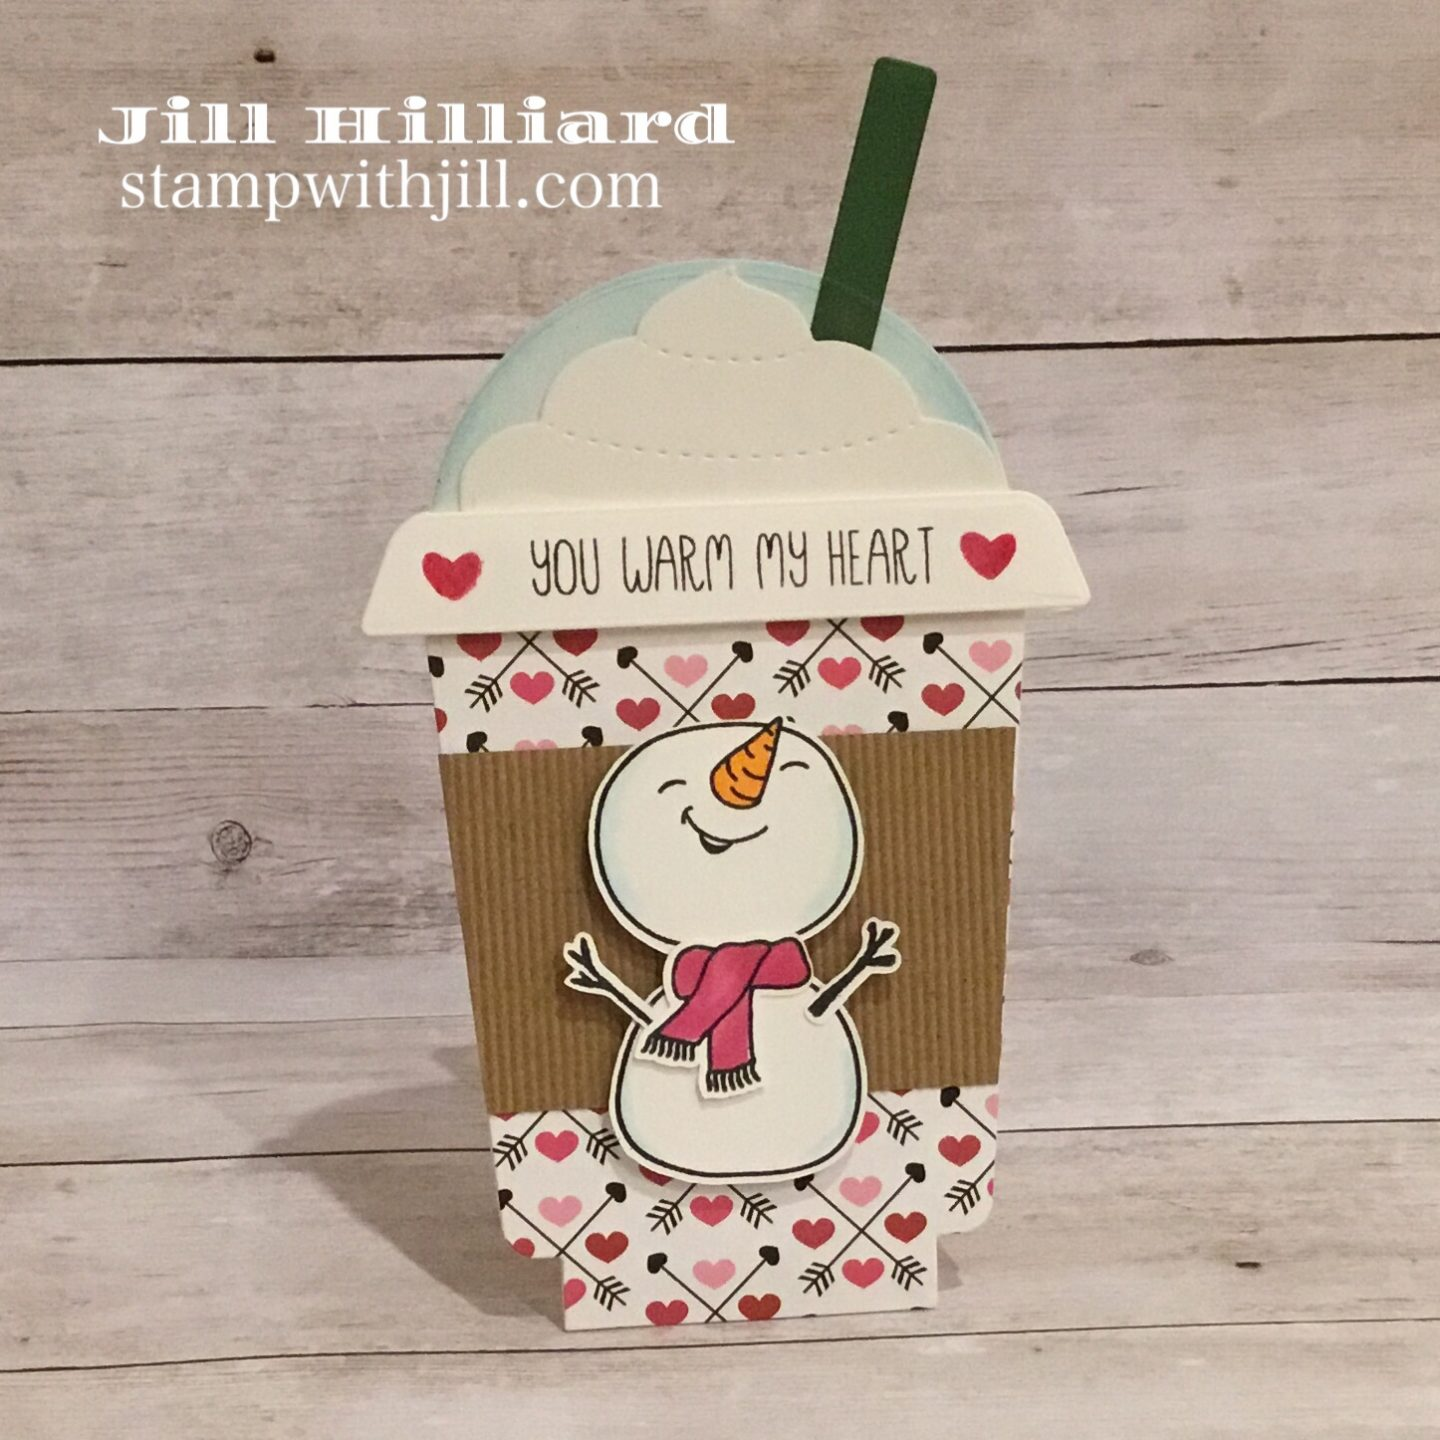 Honey Bee Stamps Frappe Shake Valentine Card with Snow Buddies, Stamp With Jill